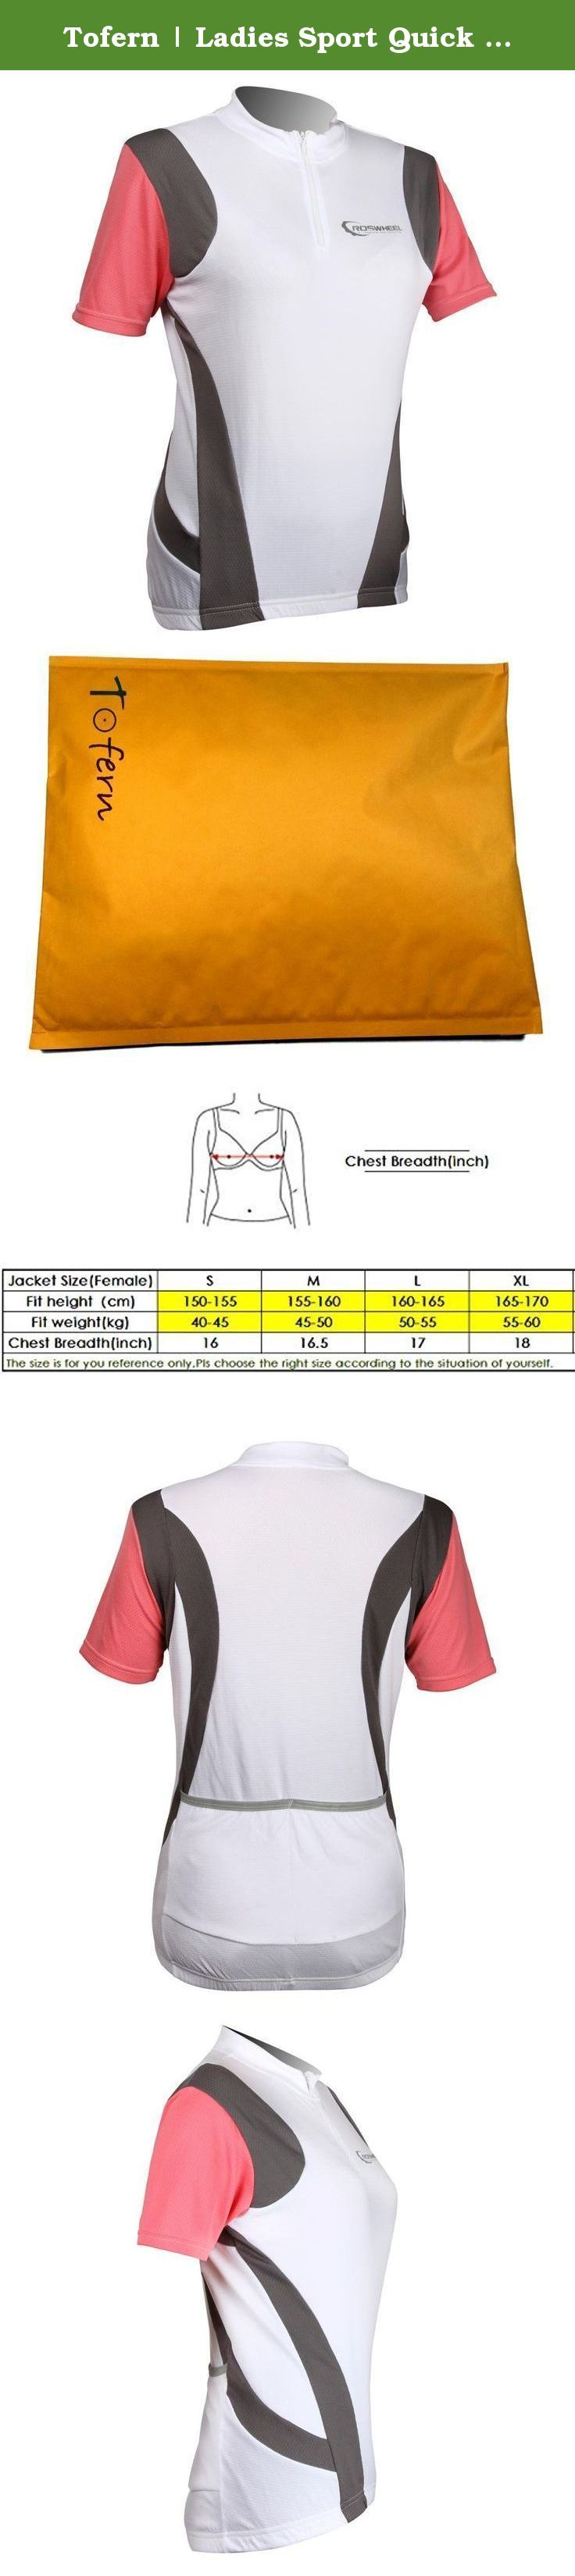 Tofern   Ladies Sport Quick Dry Short Sleeve T-Shirt Cycling Running T shirt - red - M. Original fashion design, fresh colored by Italian J-TECK paint Ergonomical designed, perfect suitable for Female sports Made by super lightweight breathable and quick dry material Lengthen rear hem , professional designed for cycling 2 rear pockets edged with reflective strips, for convenient storage and safty cycling/running 3 colors for selection: Blue, White, Red Package: 1 * sports T shirt Tofern is…